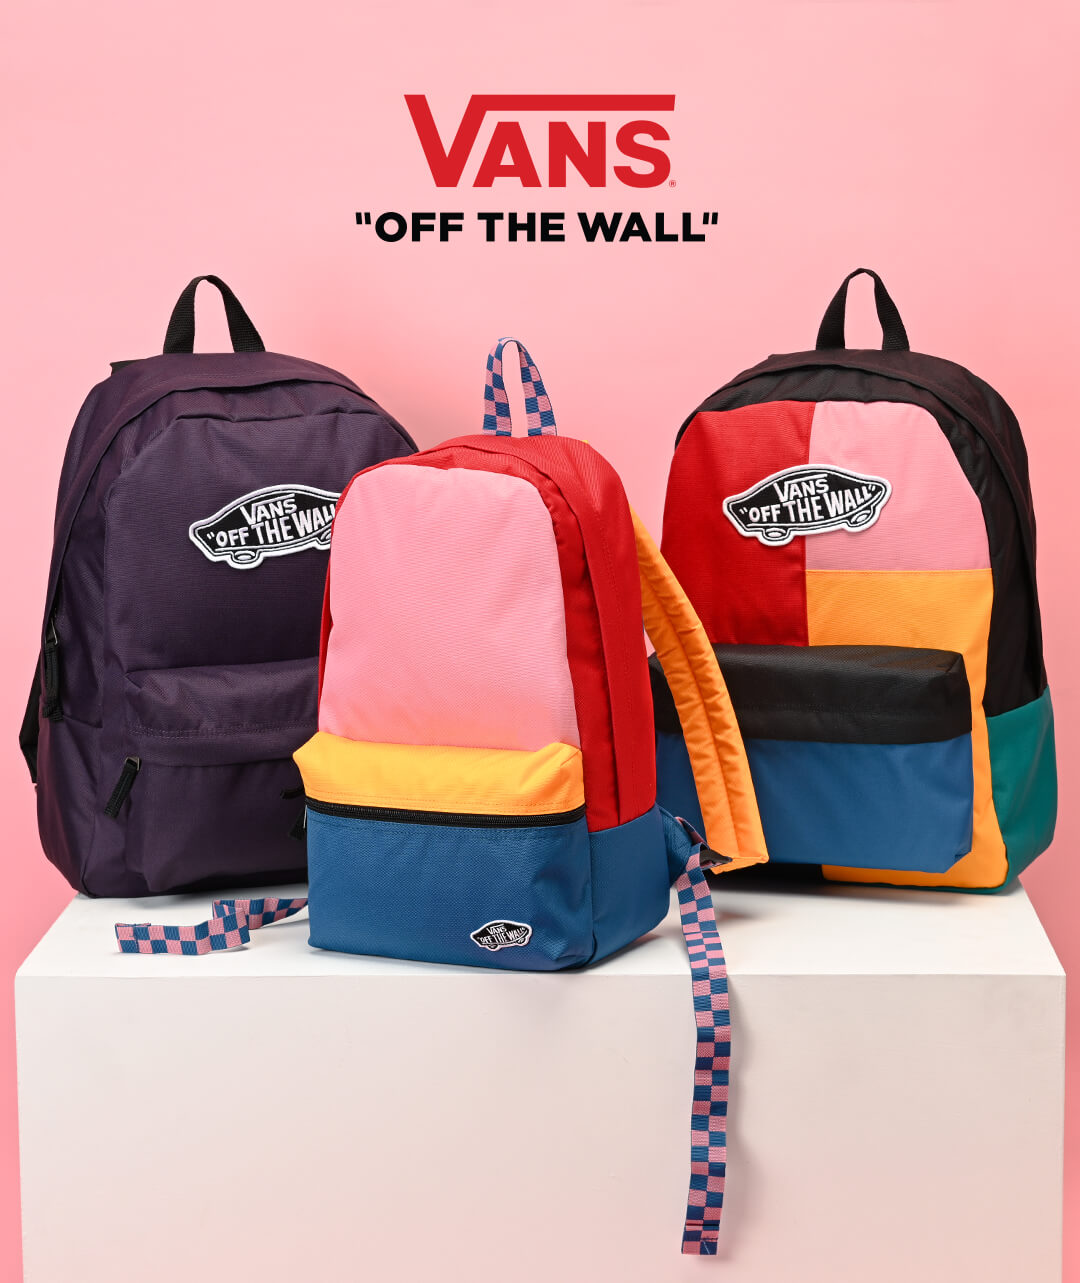 NEW ARRIVAL BACKPACKS FEAT. VANS & MORE - SHOP NEW BACKPACKS